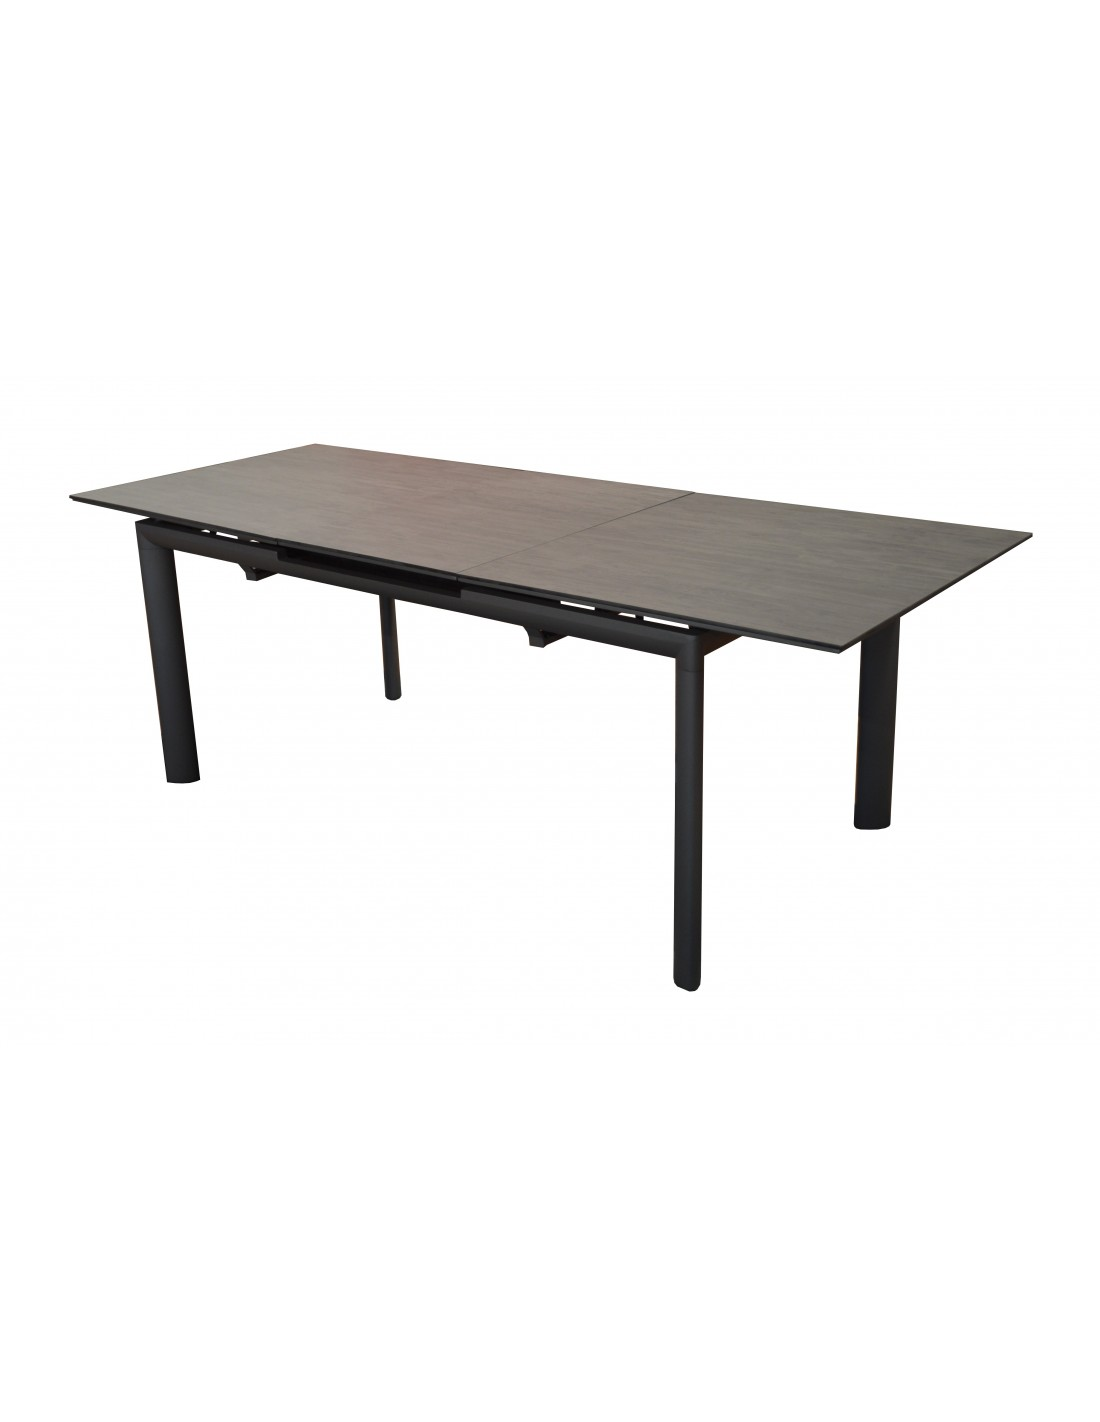 Table de jardin extensible hpl 84 images table de - Table de jardin carree extensible ...